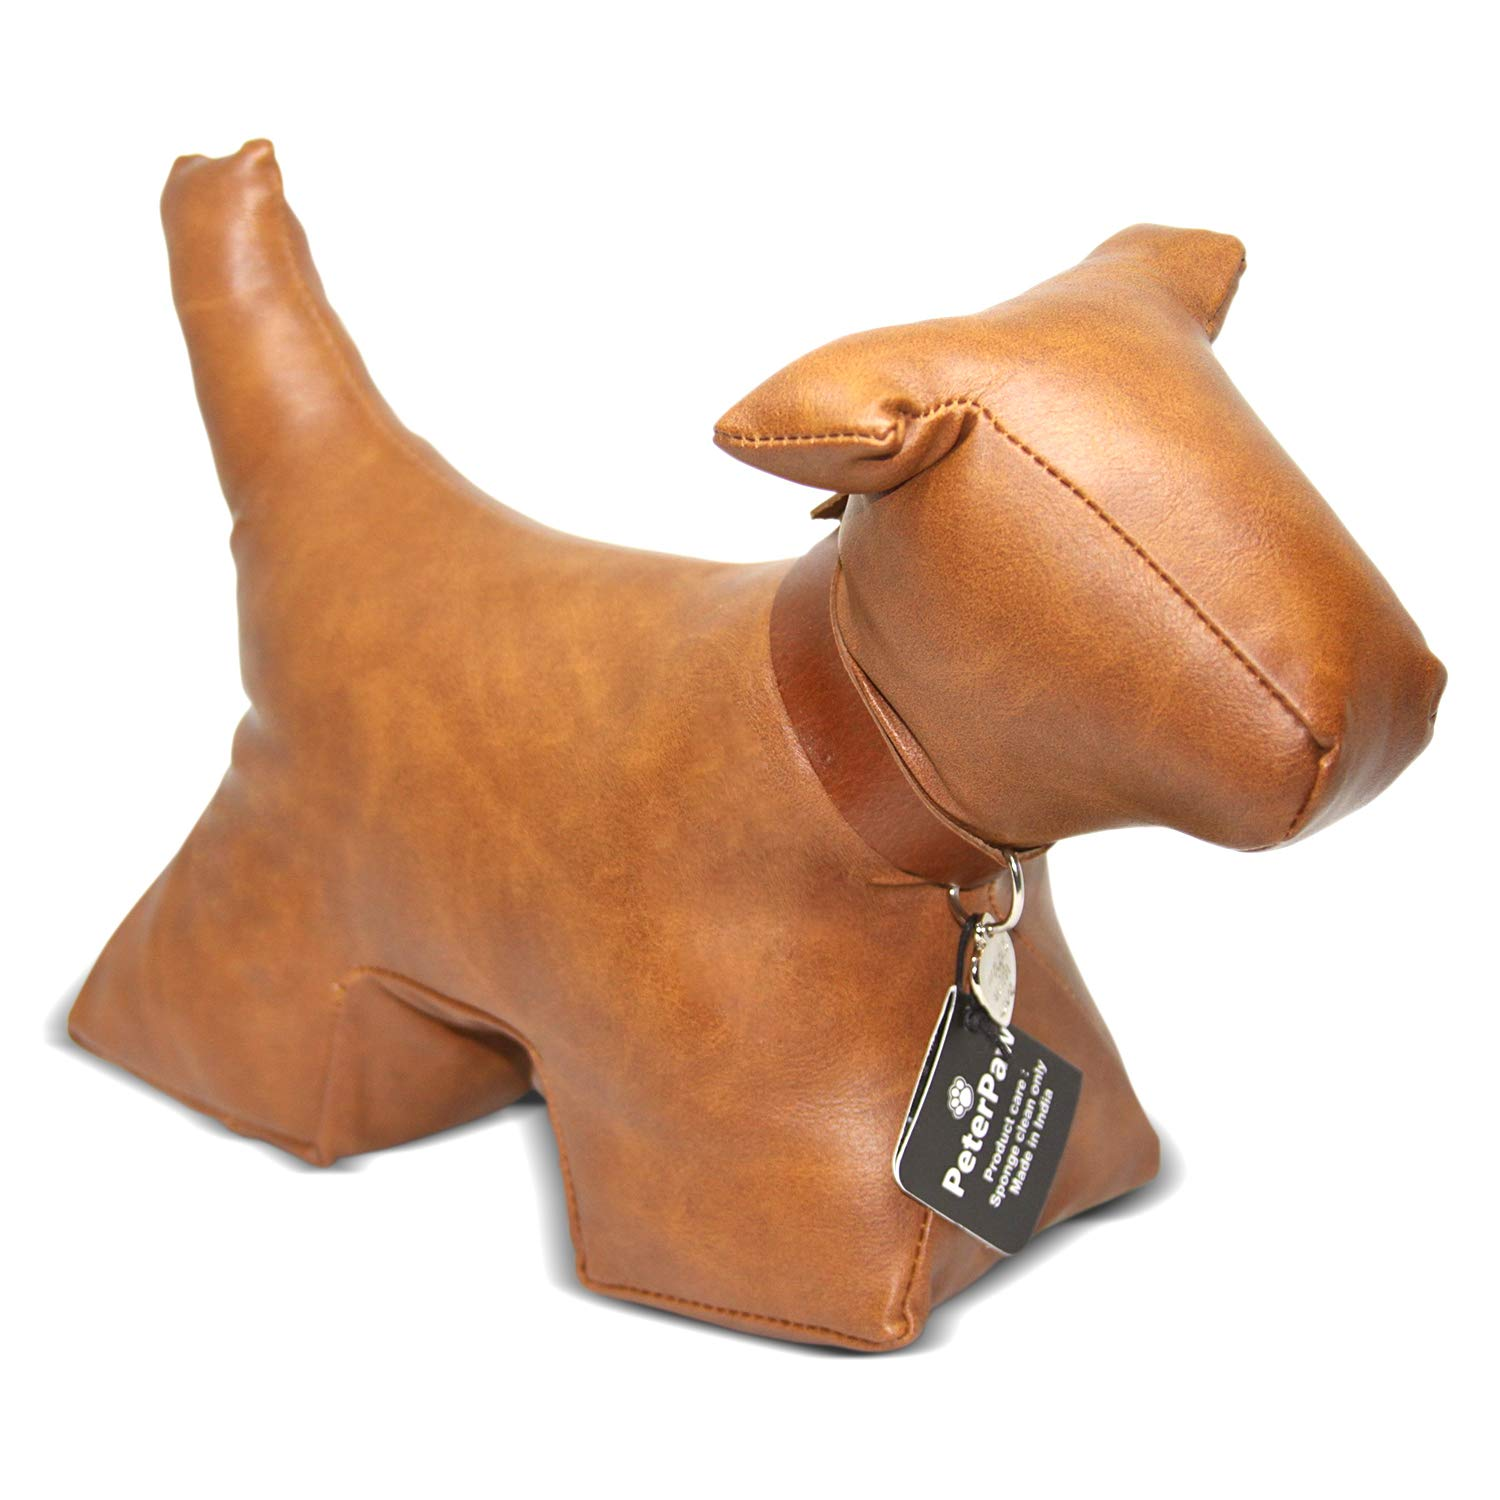 Decor Door Stopper- Cute x 8 in H Dog Lover Gifts for Women W L Perfect Size: 11 in Decorative Door Stopper Durable and Heavy: 2.8lbs x 4 in